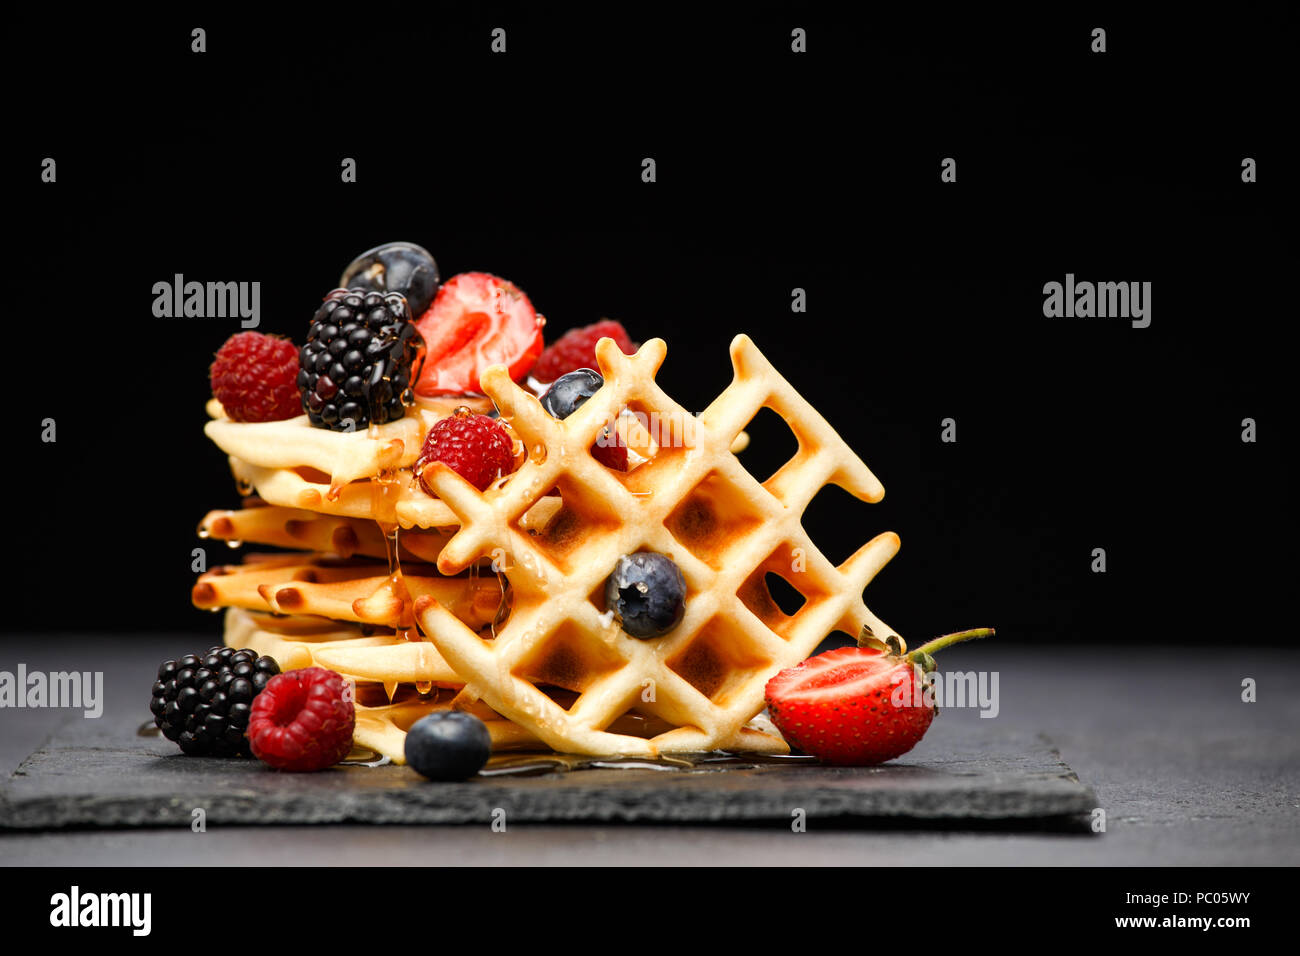 Photo of viennese wafers with berries pouring honey on black background - Stock Image